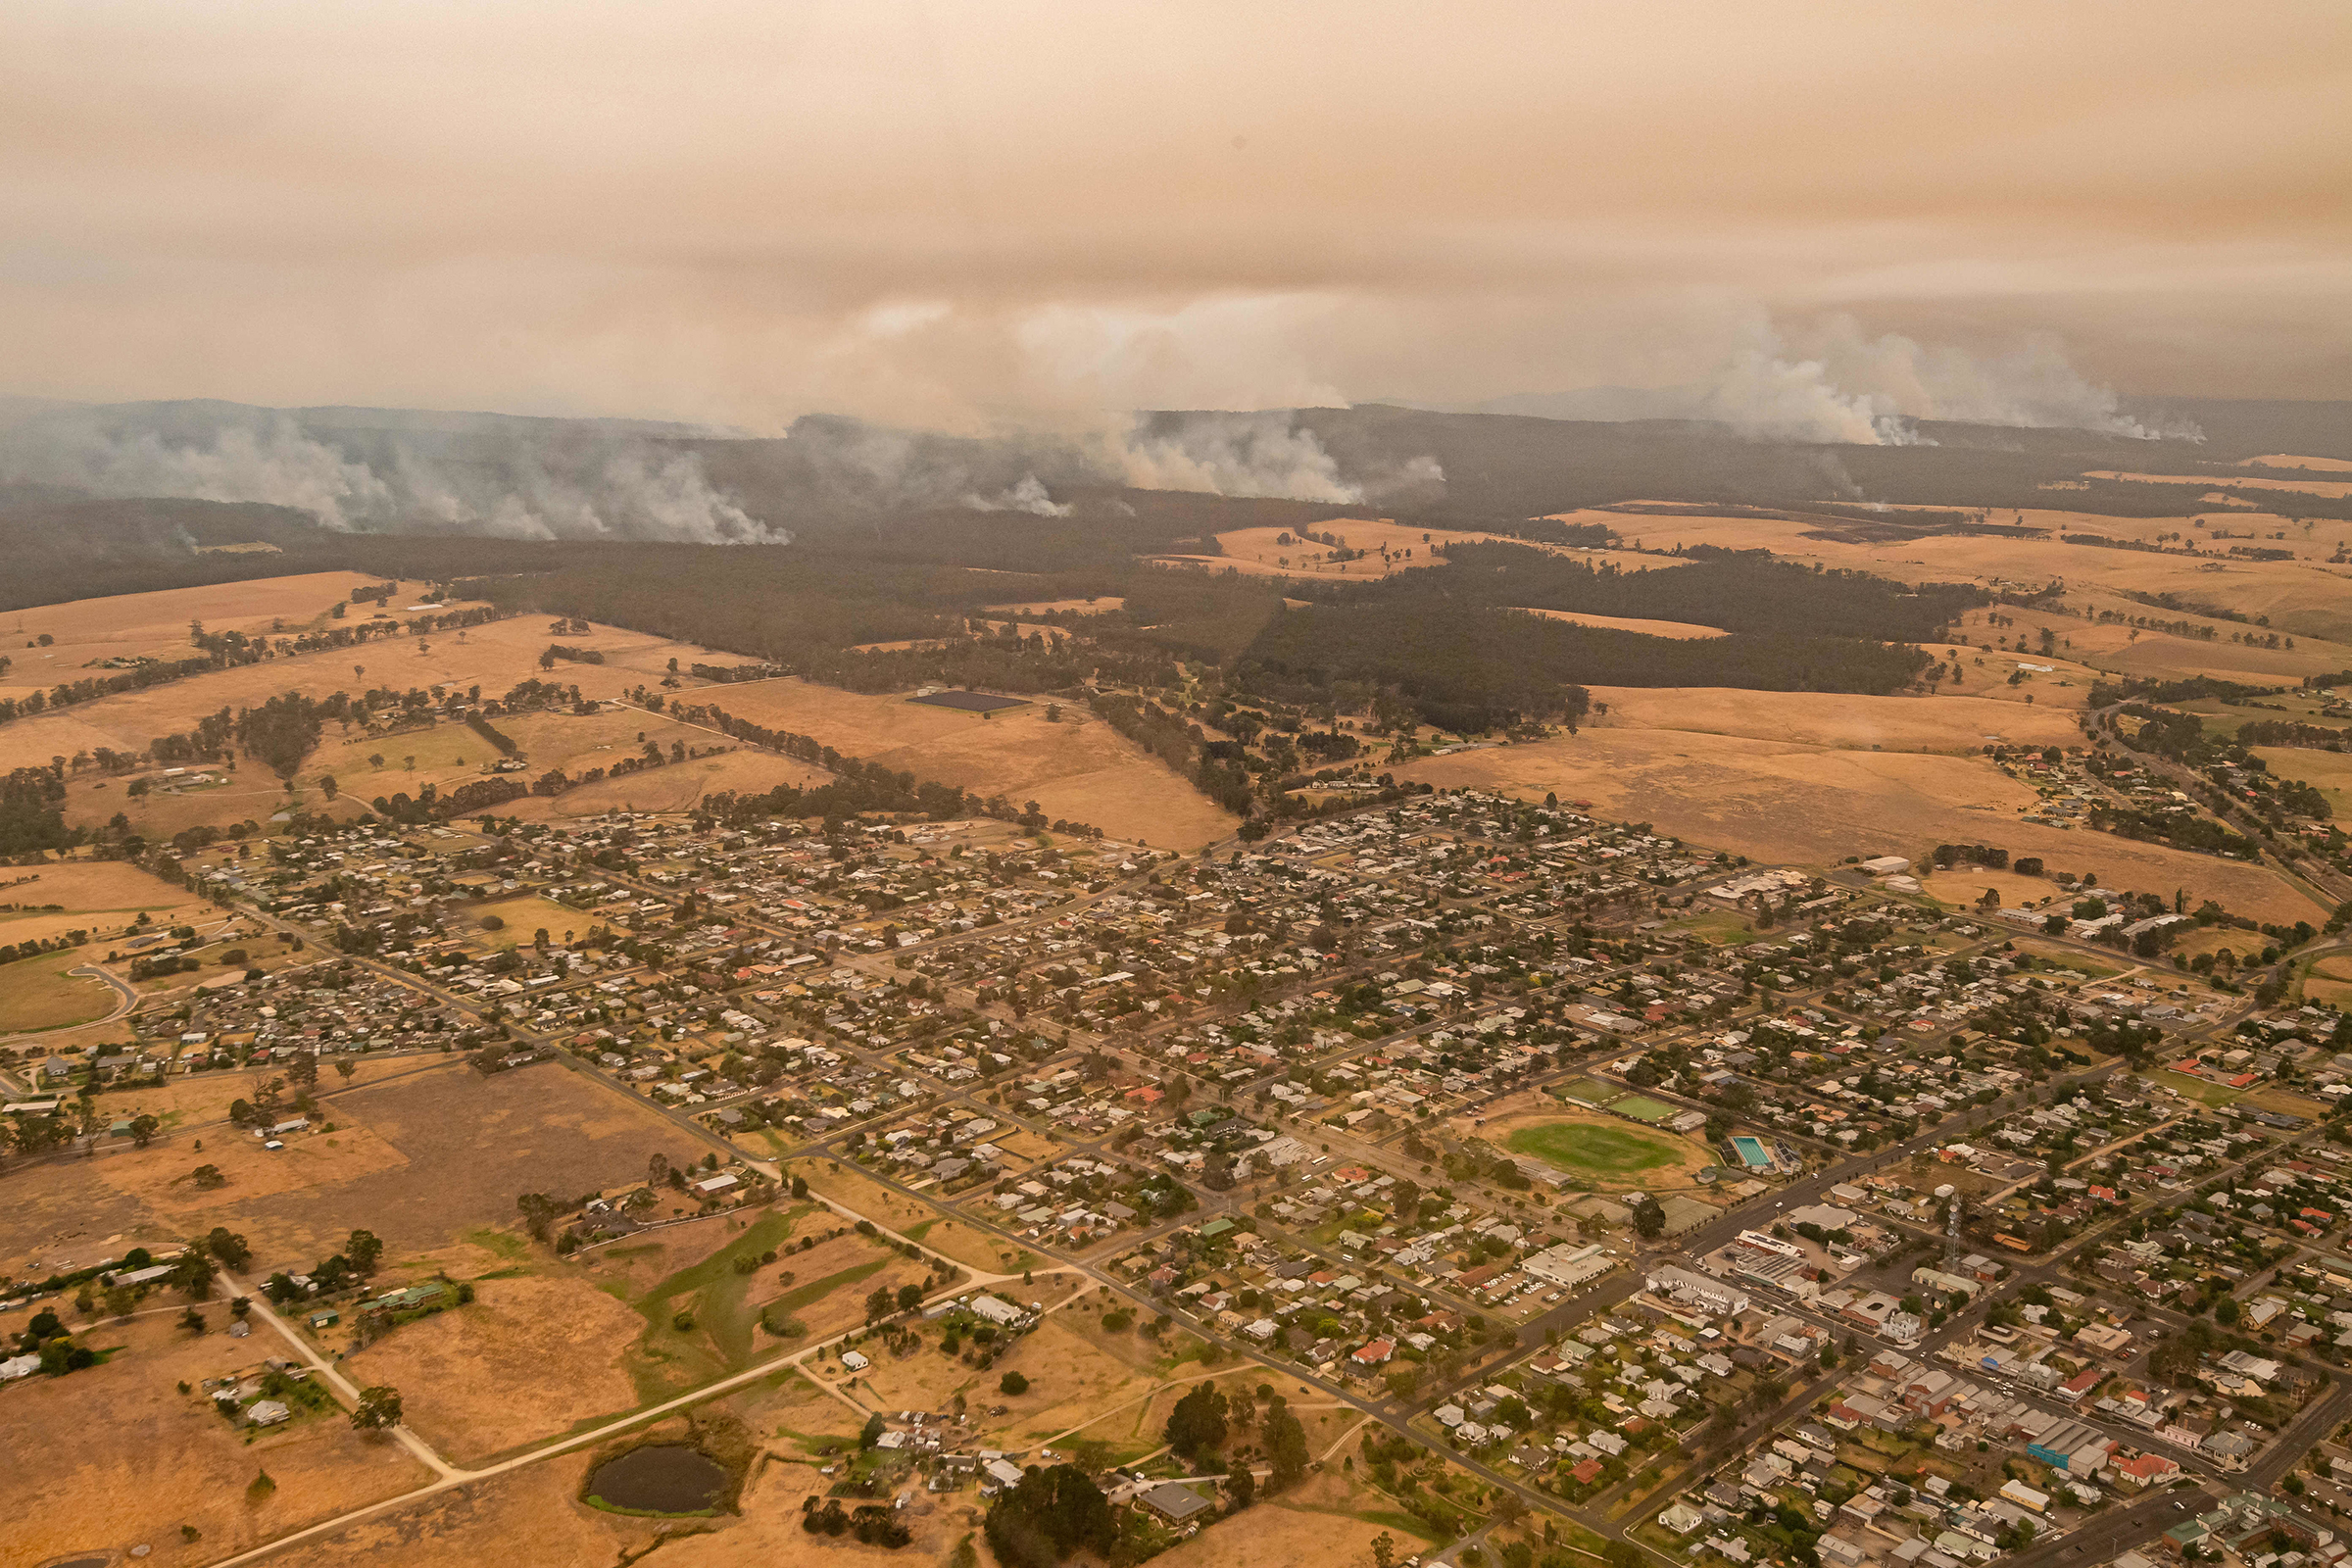 The area of Orbost, under threat from the East Gippsland fires, on Jan. 1.